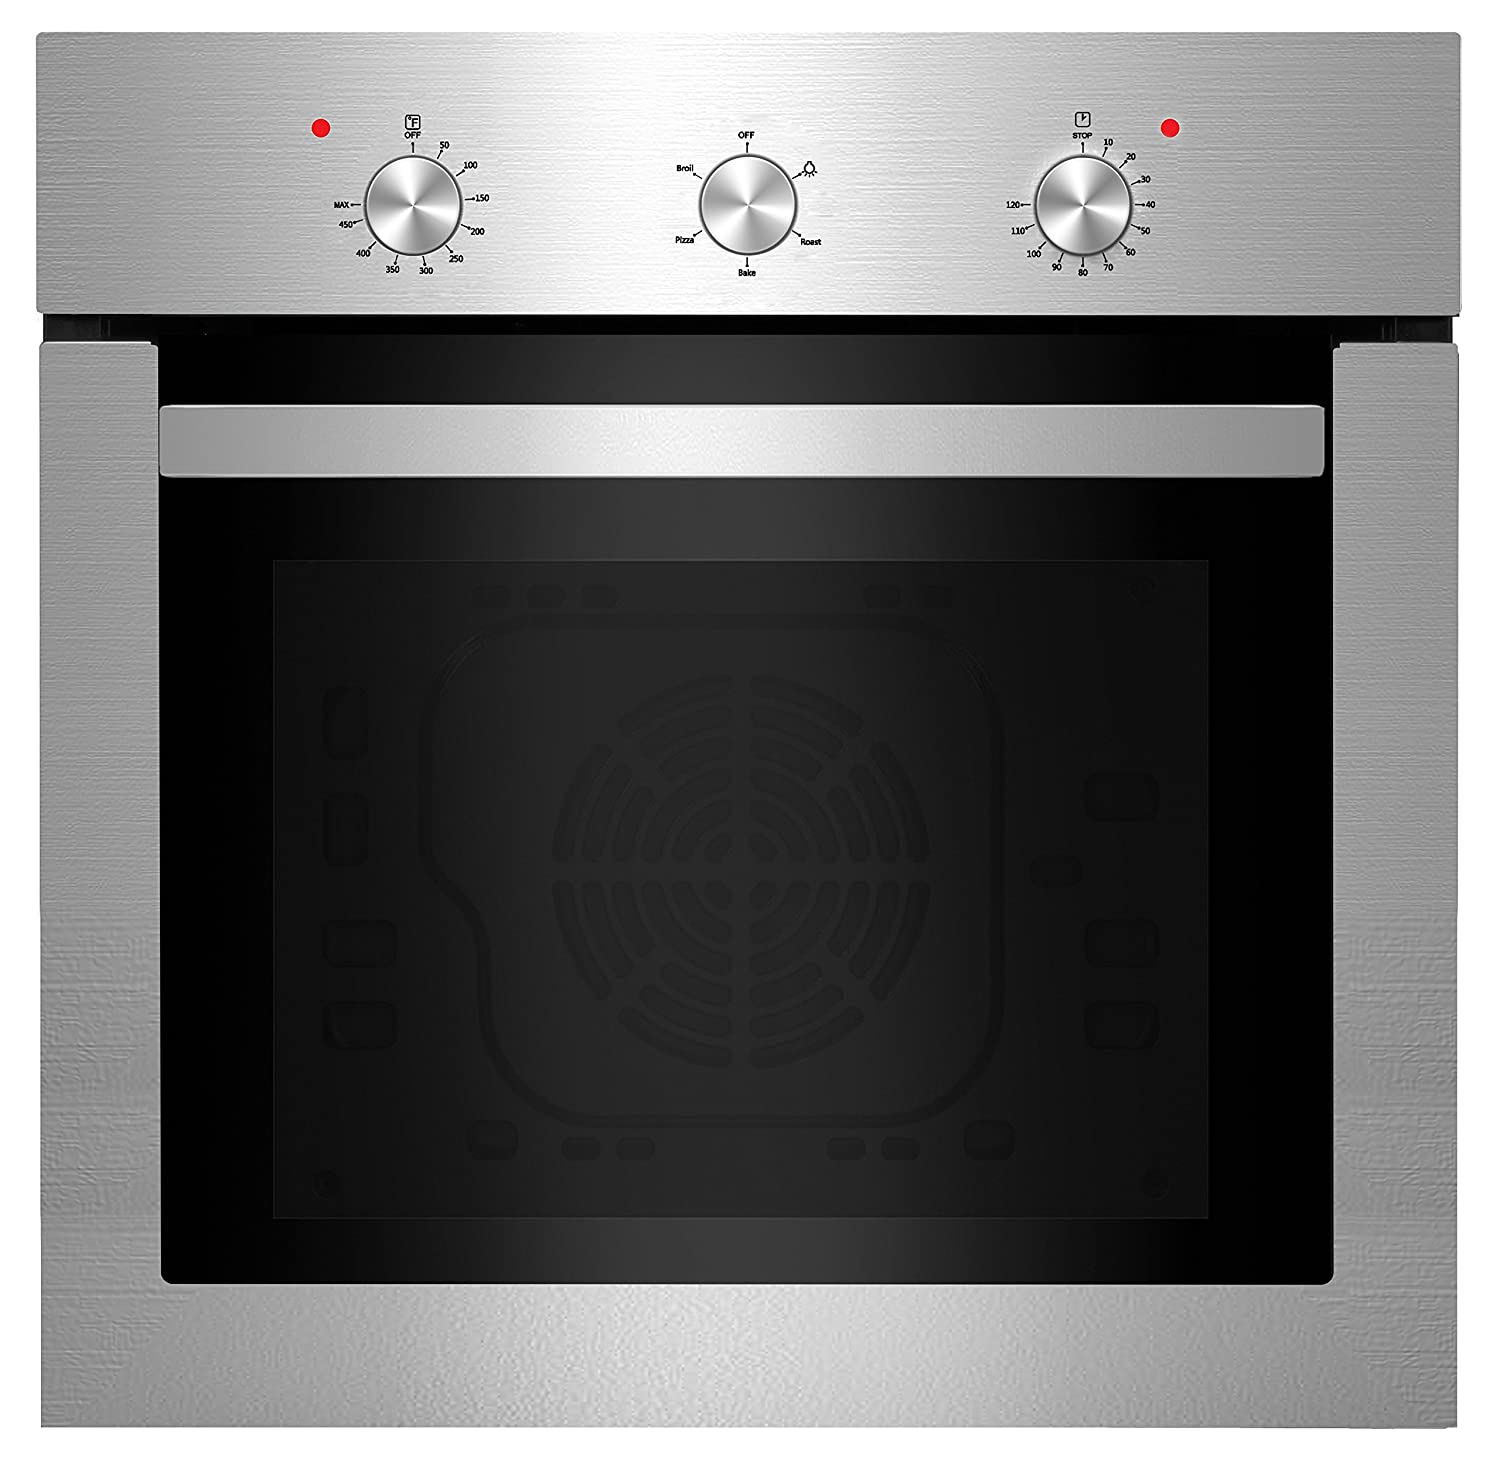 """Empava 24"""" Push Buttons Electric Built-in Economy Under-Counter Stainless Steel Single Wall Ovens EMPV-24WOA01-LTL"""